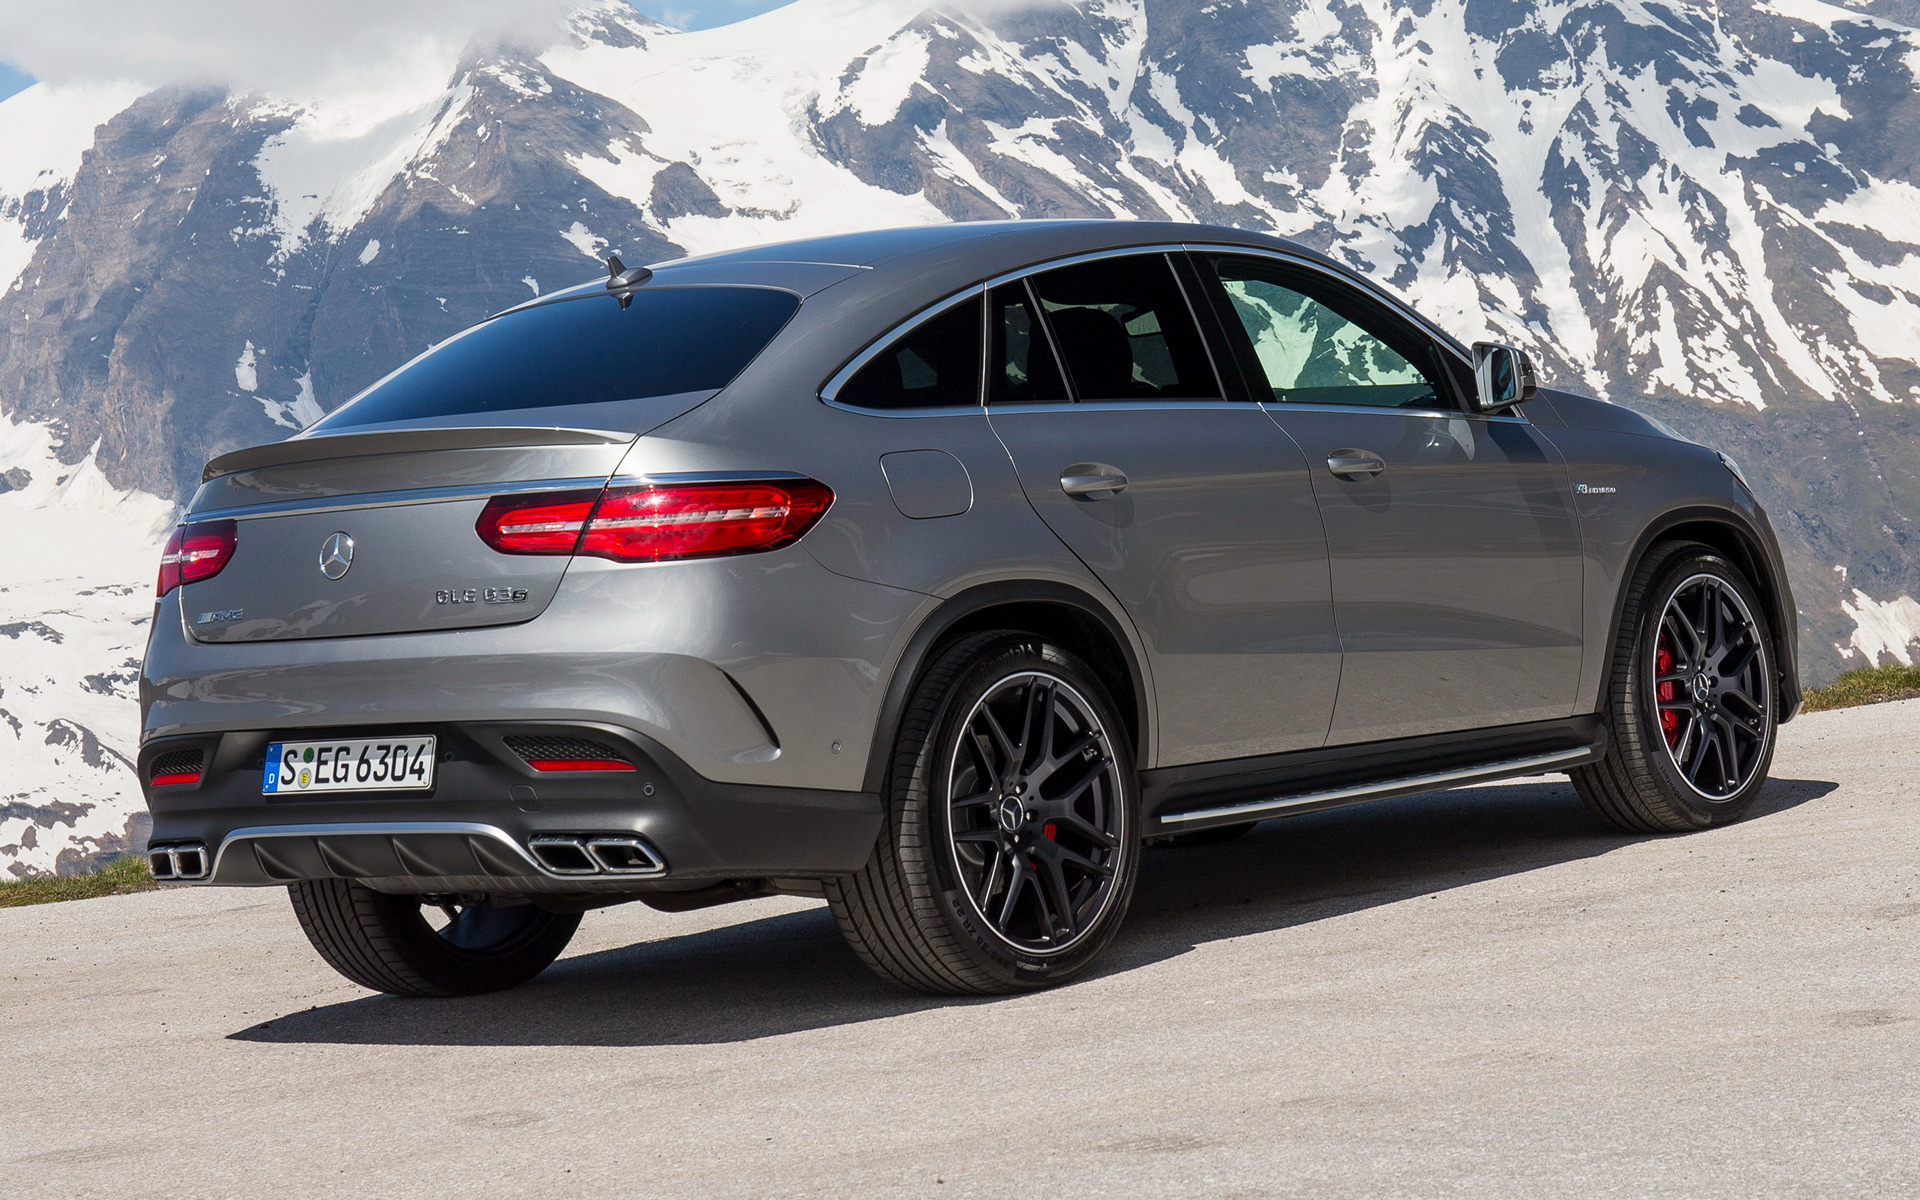 2015 Mercedes-AMG GLE 63 S Coupe - Wallpapers and HD ...